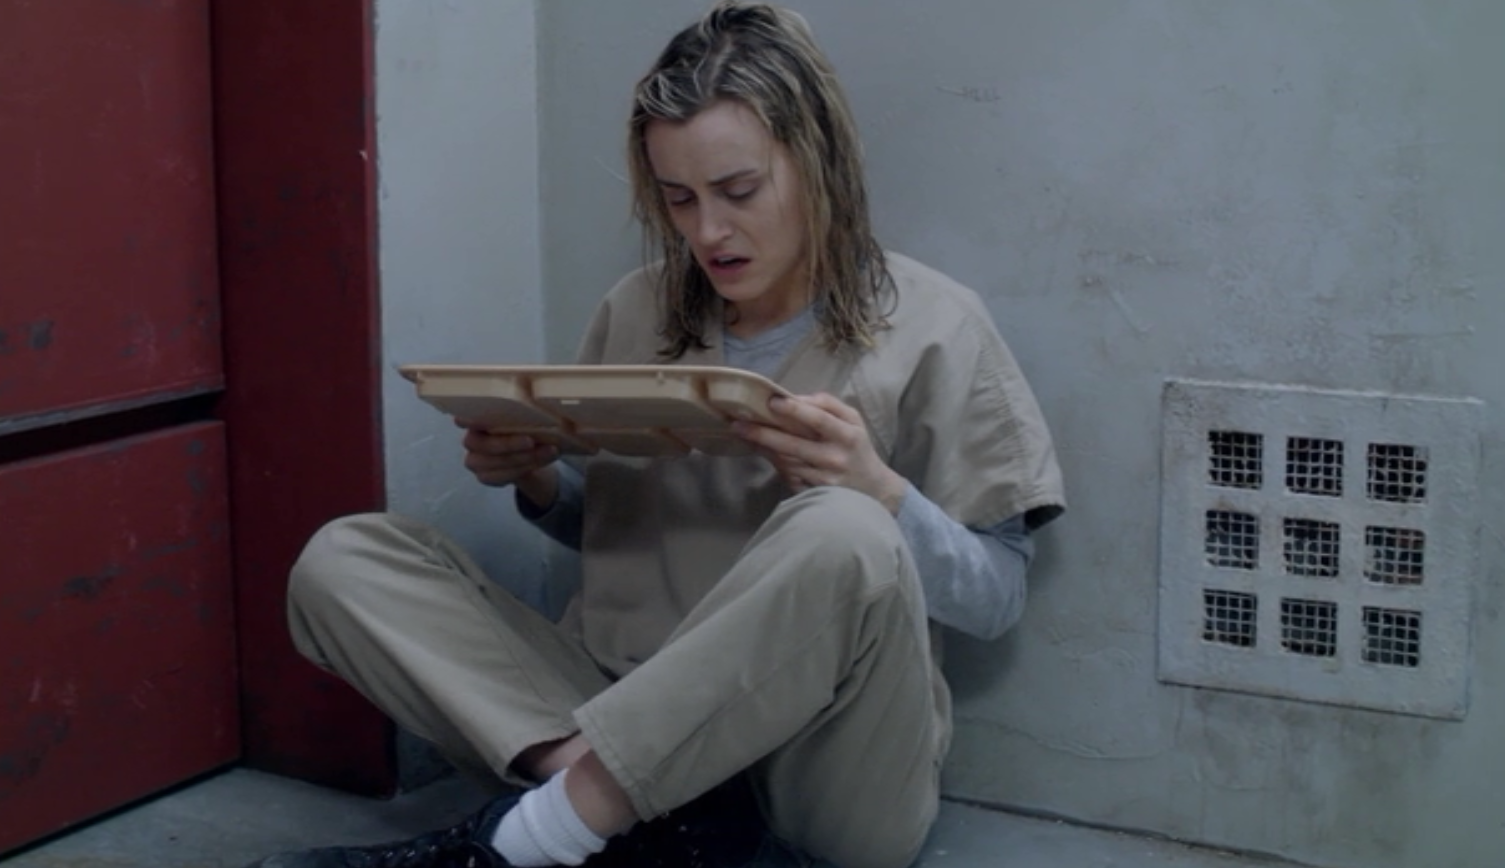 Piper grimacing in solitary confinement on the show